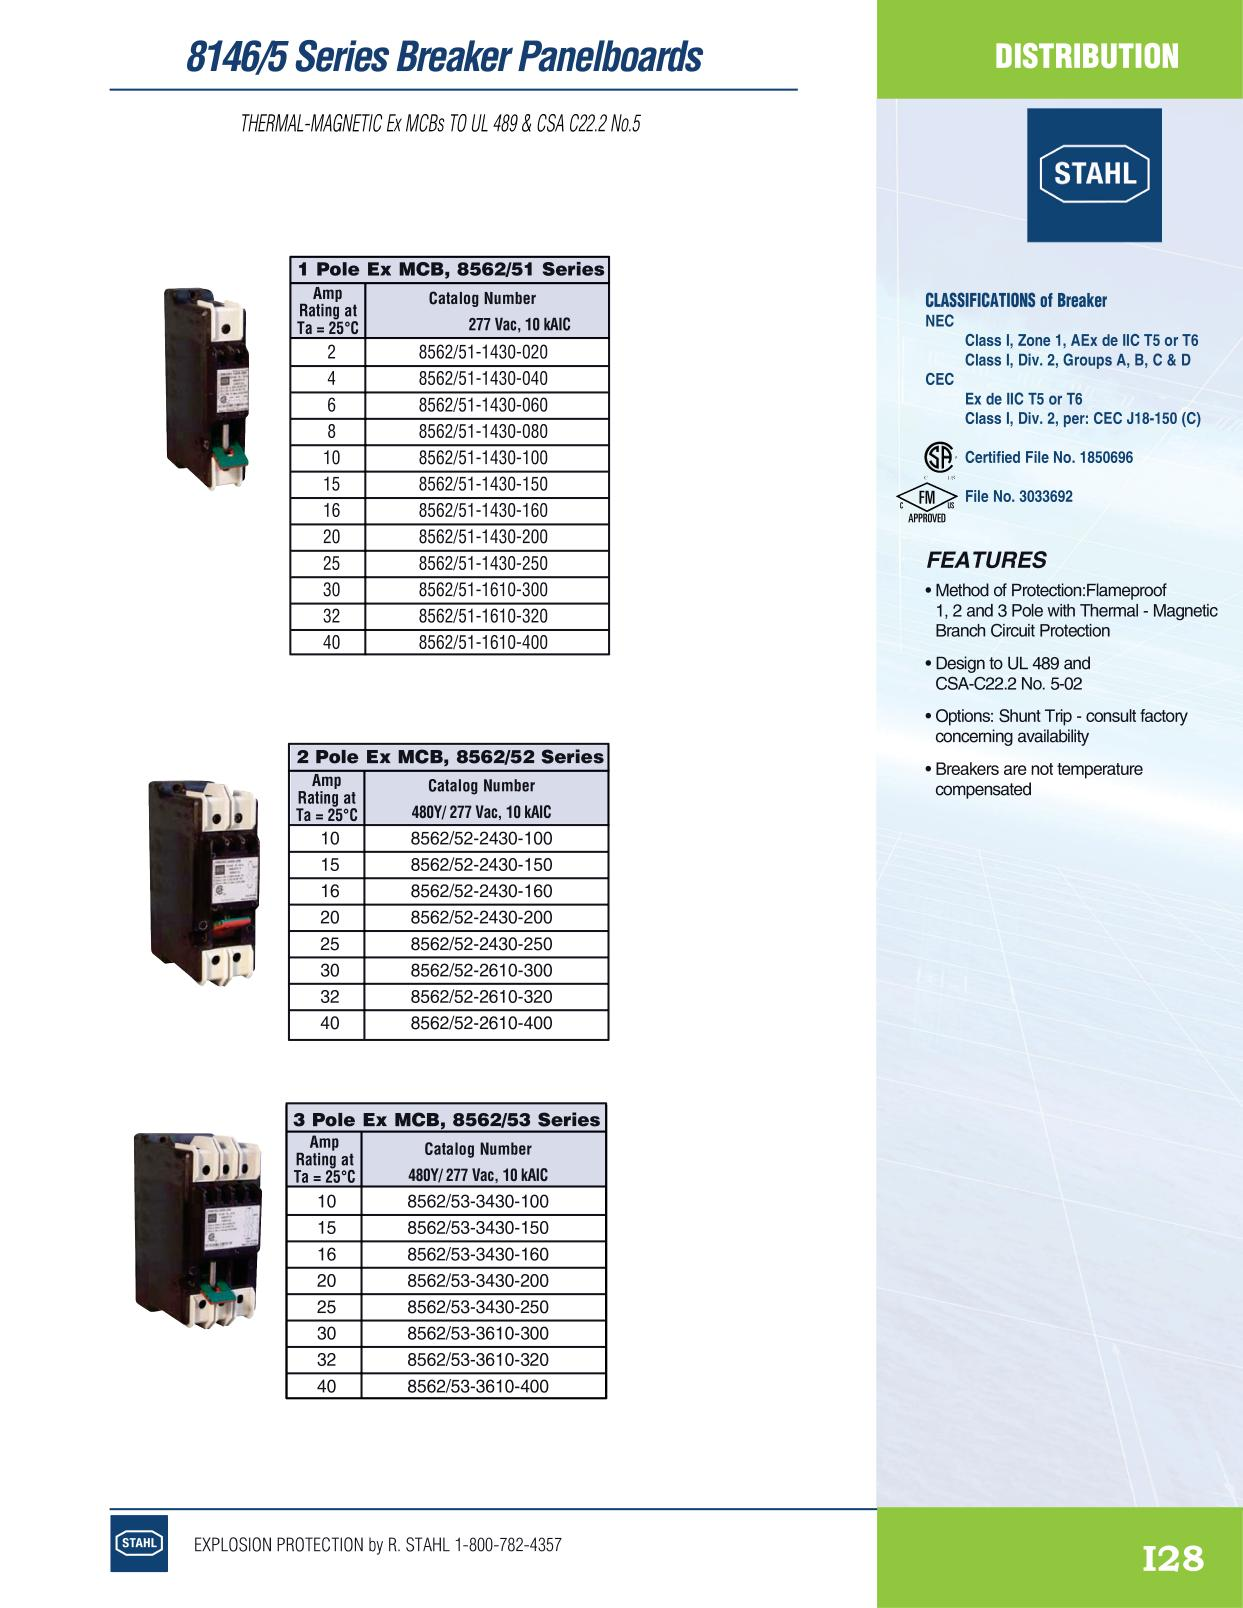 Distribution - R Stahl Electrical Catalog 9016 Page I28